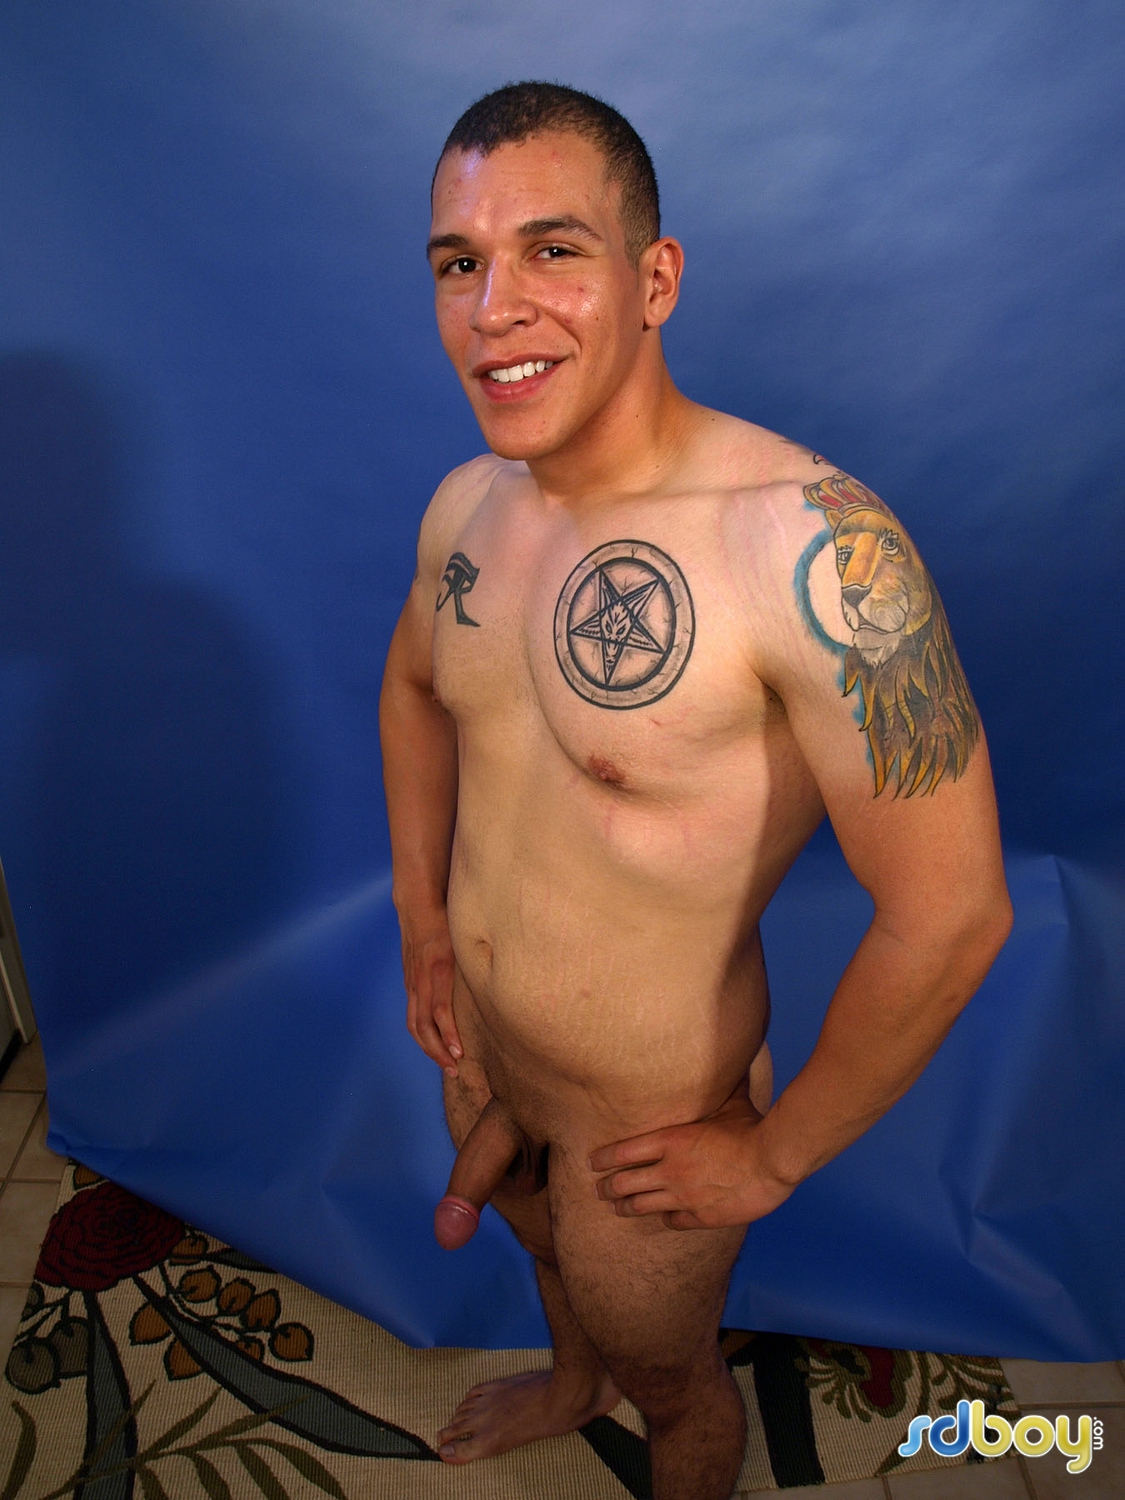 SD Boy Ray Sosa Big Uncut Cock Latino Marine Masturbating Amateur Gay Porn 05 Amateur Gay Latino Marine Shows His Tatts and Jerks His Uncut Cock